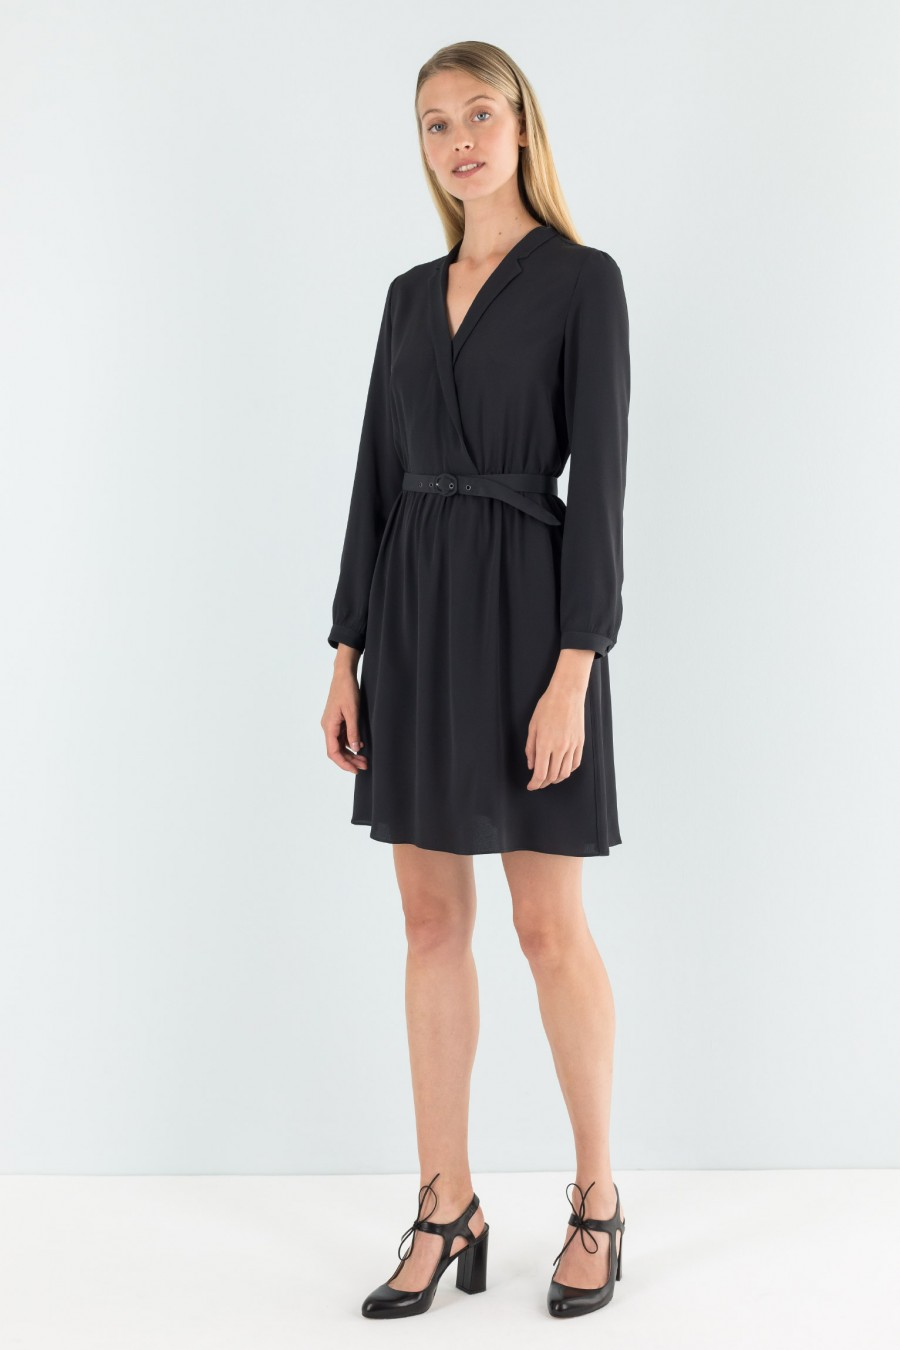 Made in Italy silk dress